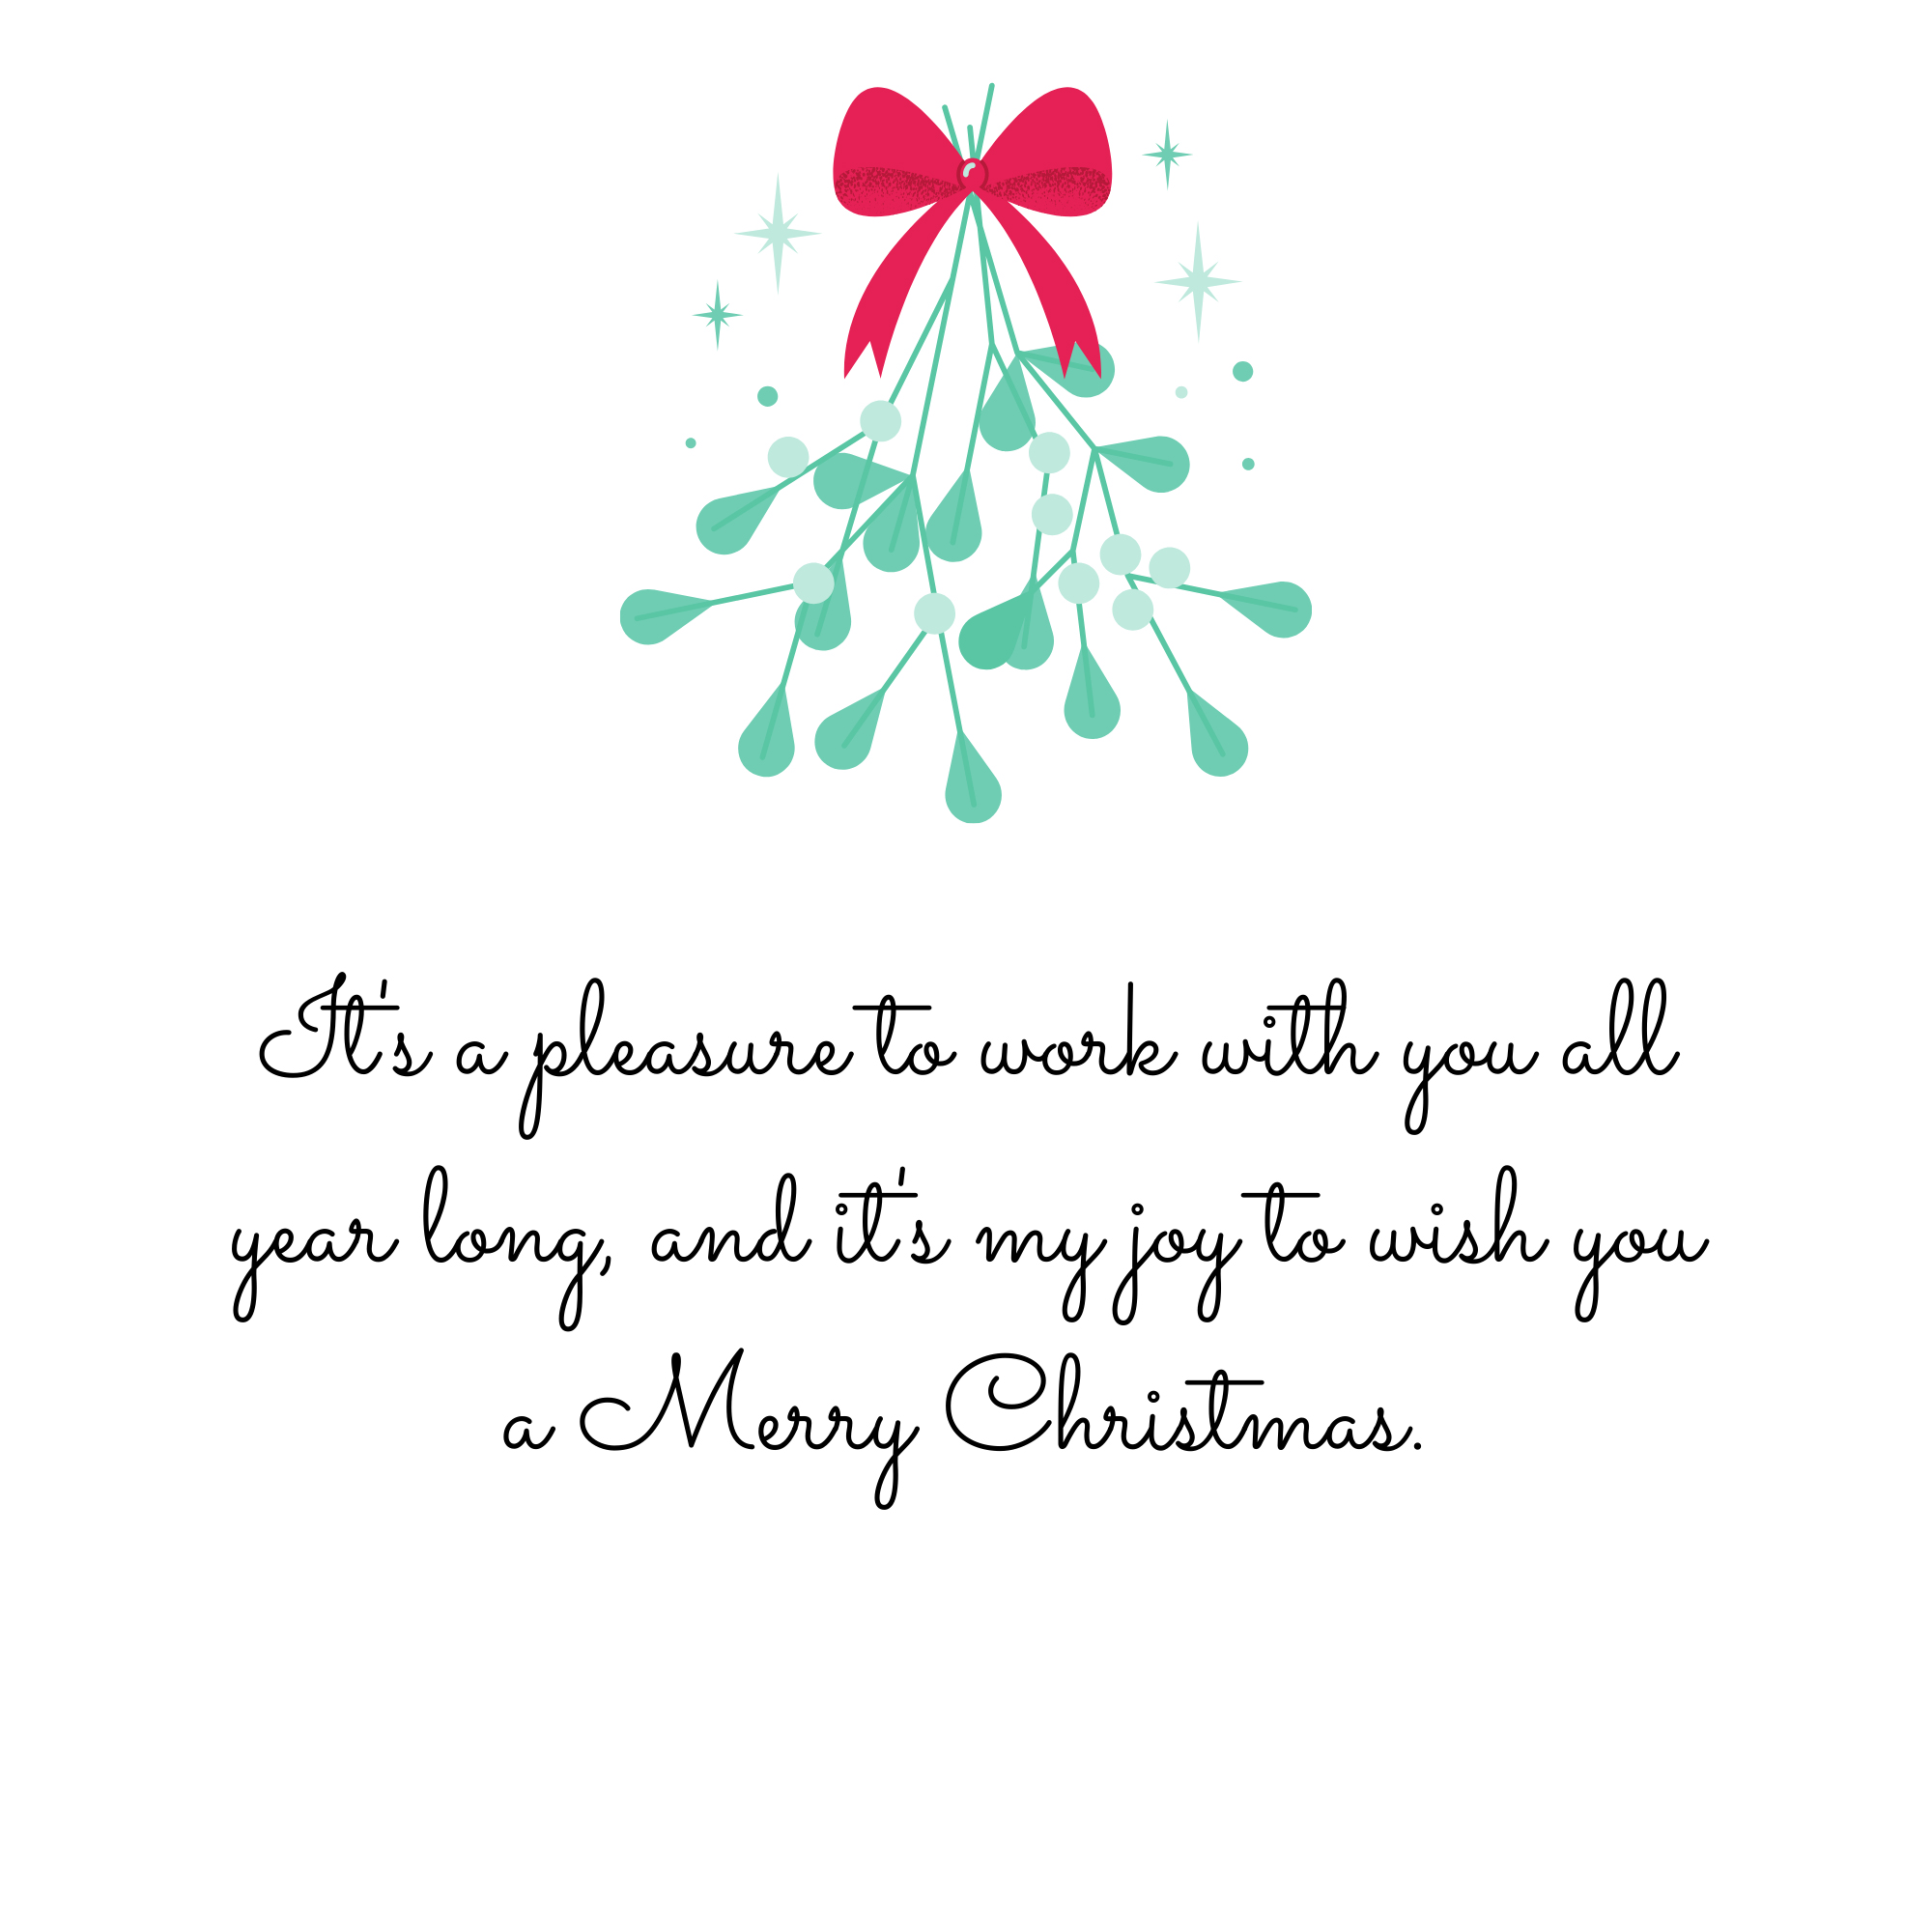 It's a pleasure to work with you all year long, and it's my joy to wish you a Merry Christmas.